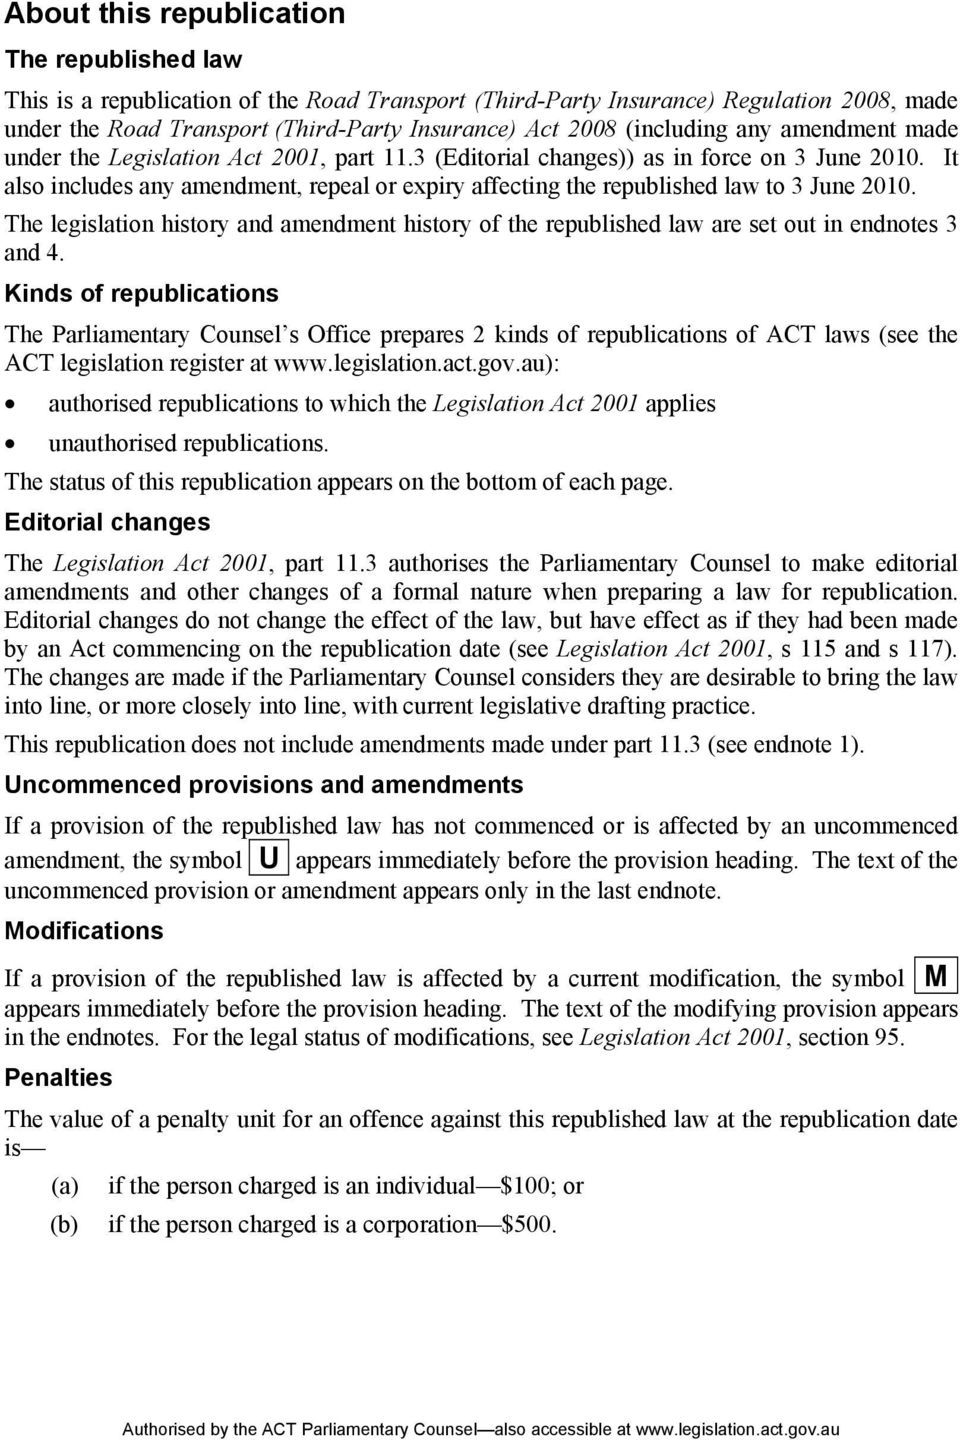 It also includes any amendment, repeal or expiry affecting the republished law to 3 June 2010. The legislation history and amendment history of the republished law are set out in endnotes 3 and 4.